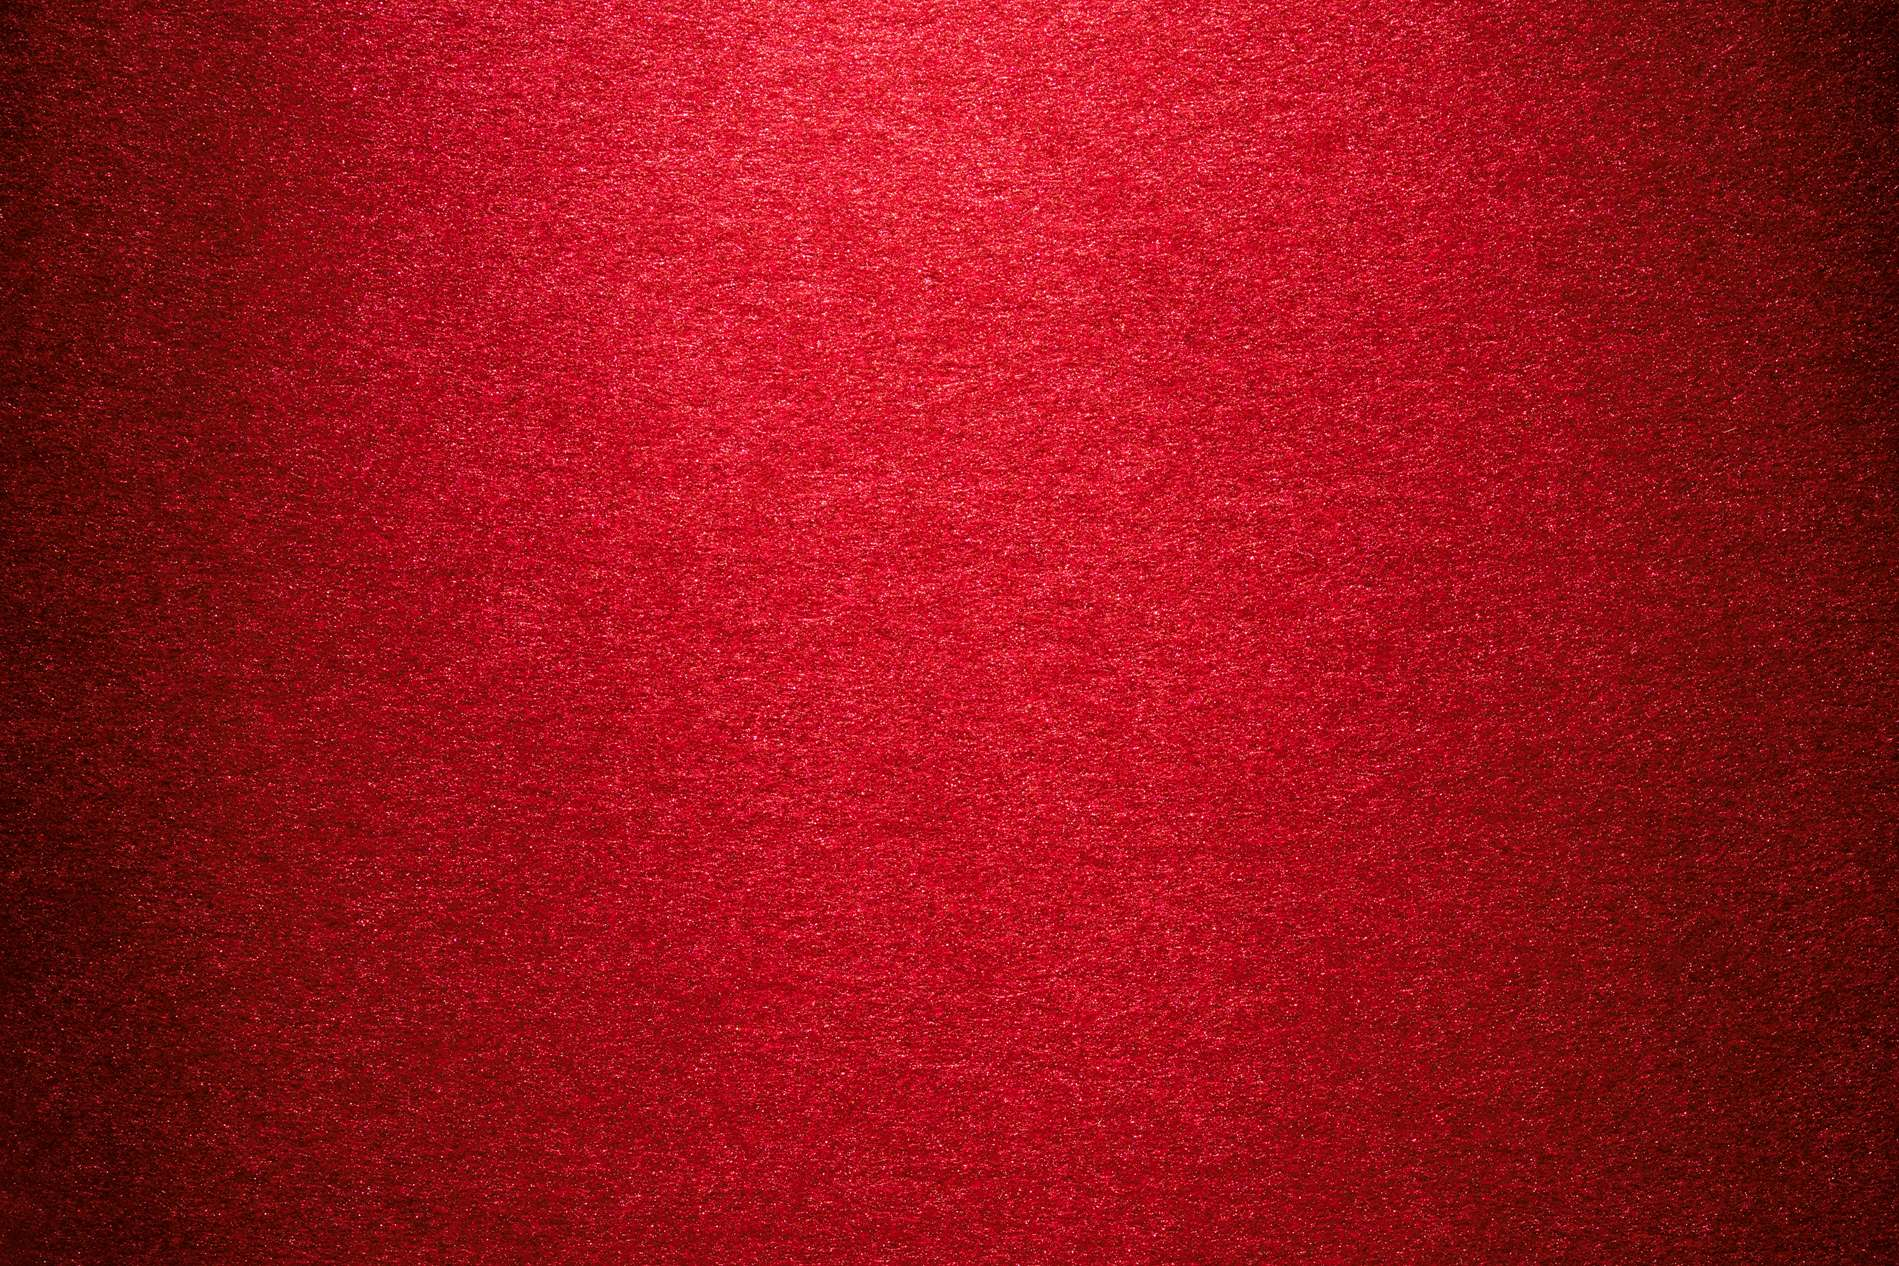 vintage red paper background photohdx